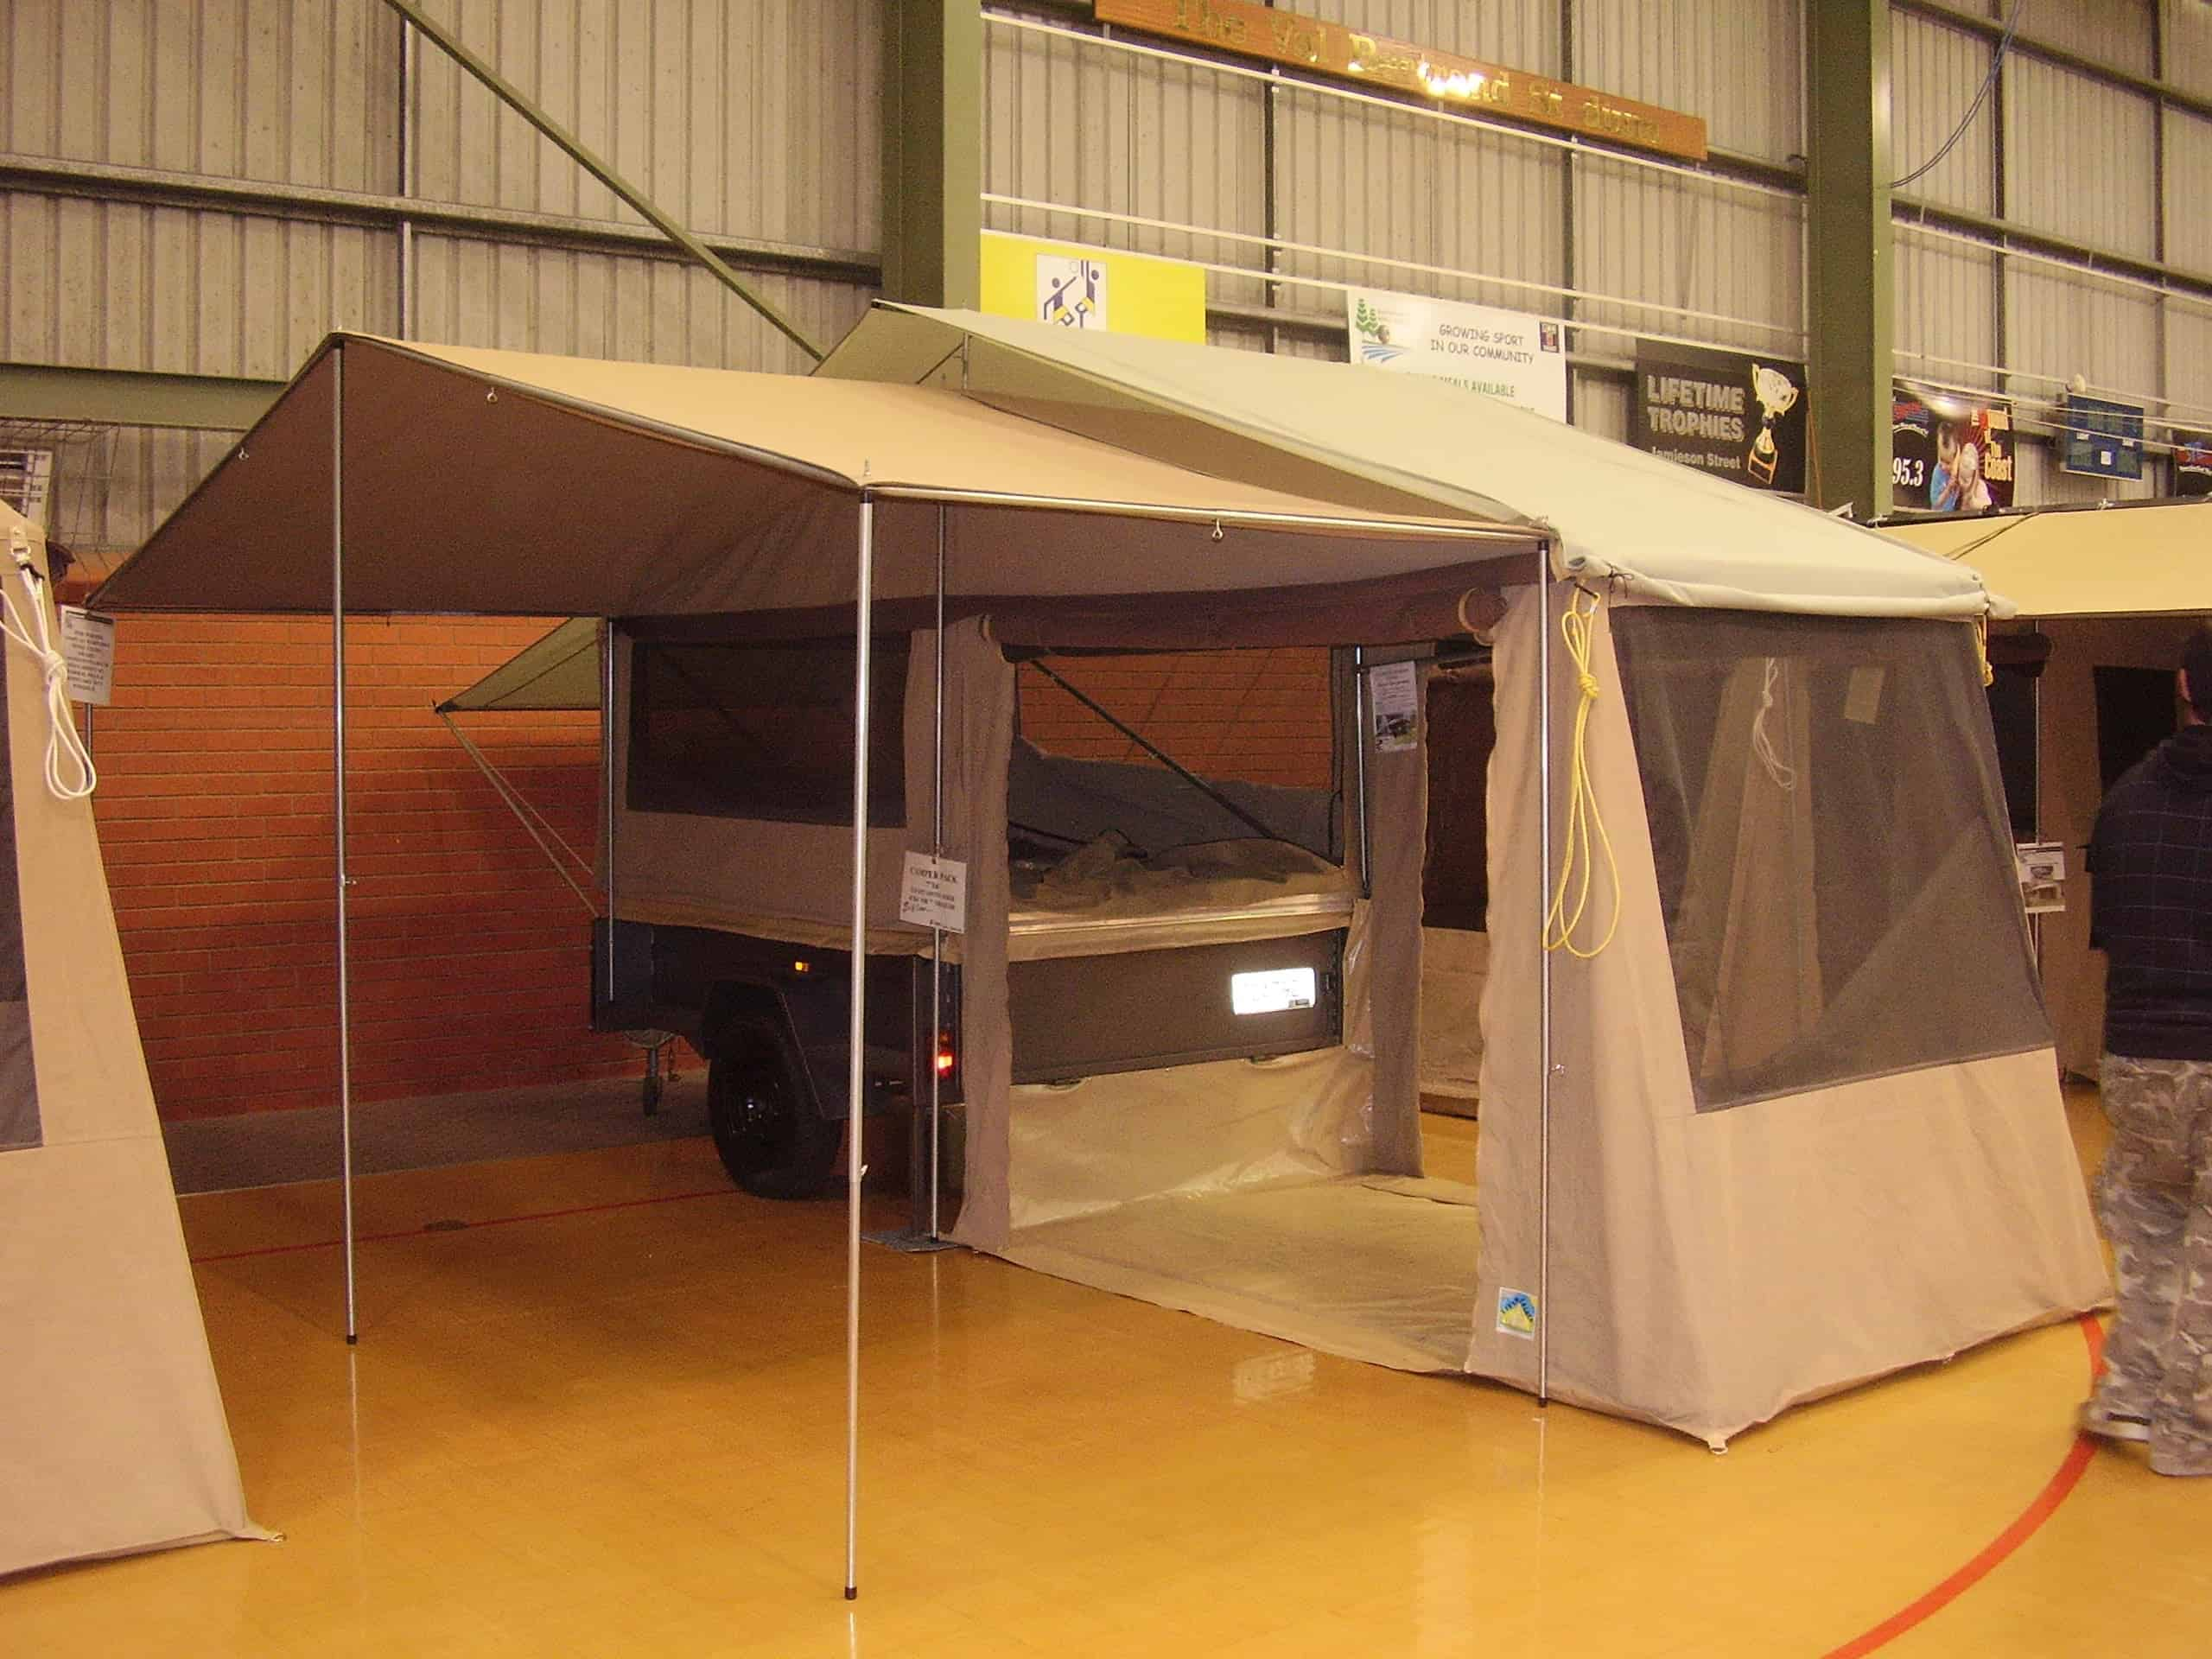 canvas canopy : rv tent covers - afamca.org